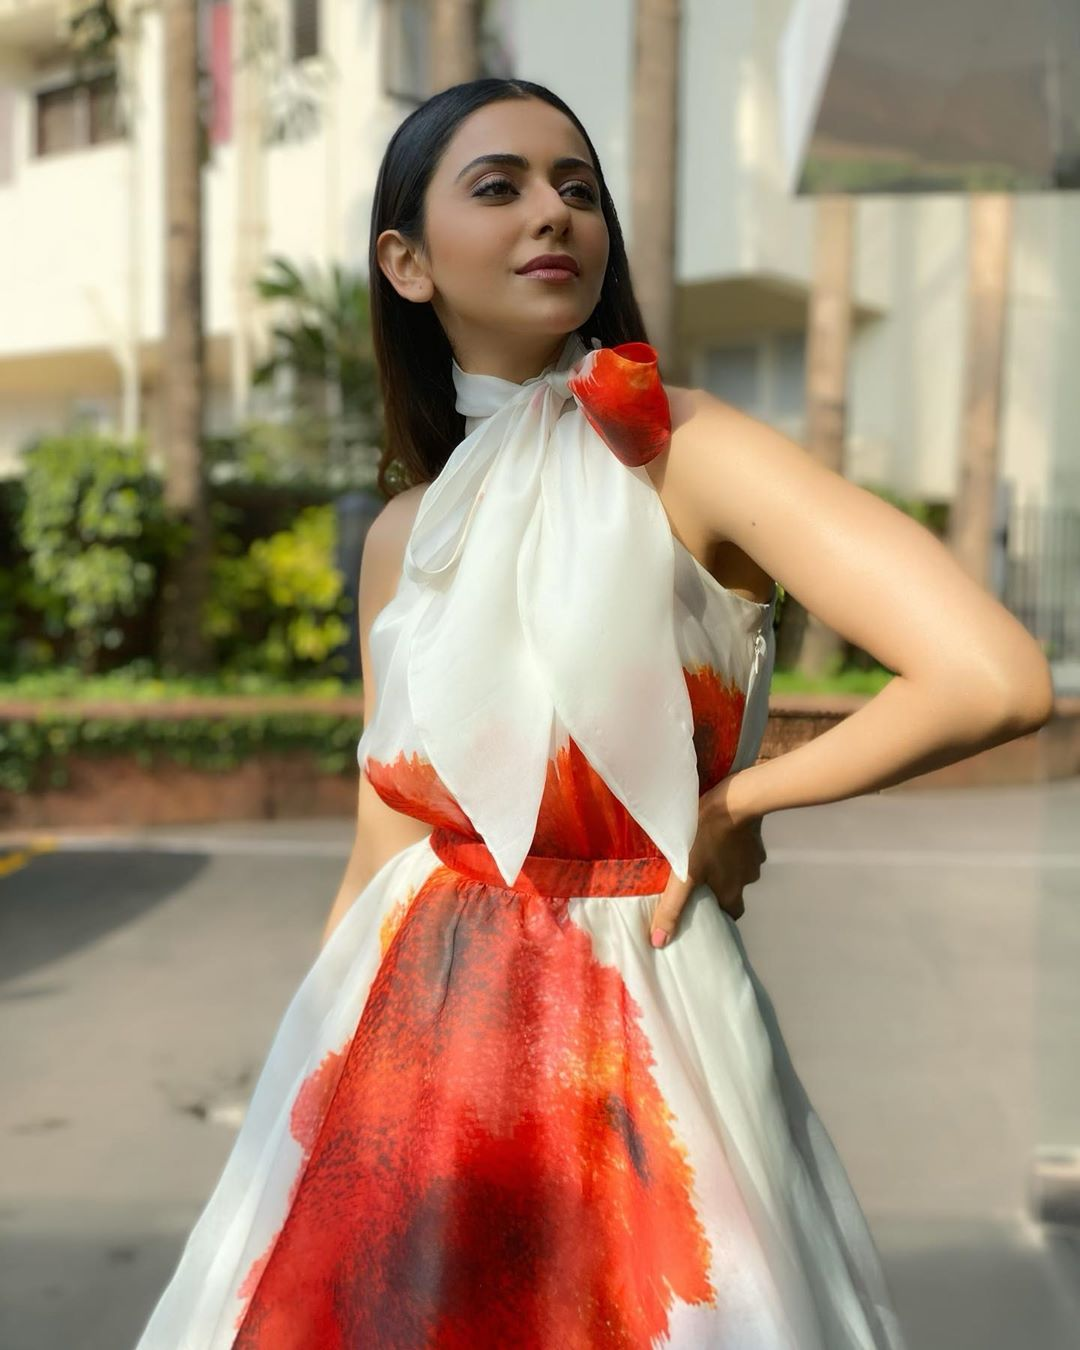 Rakul-Singh-Wallpapers-Insta-Fit-Bio-6